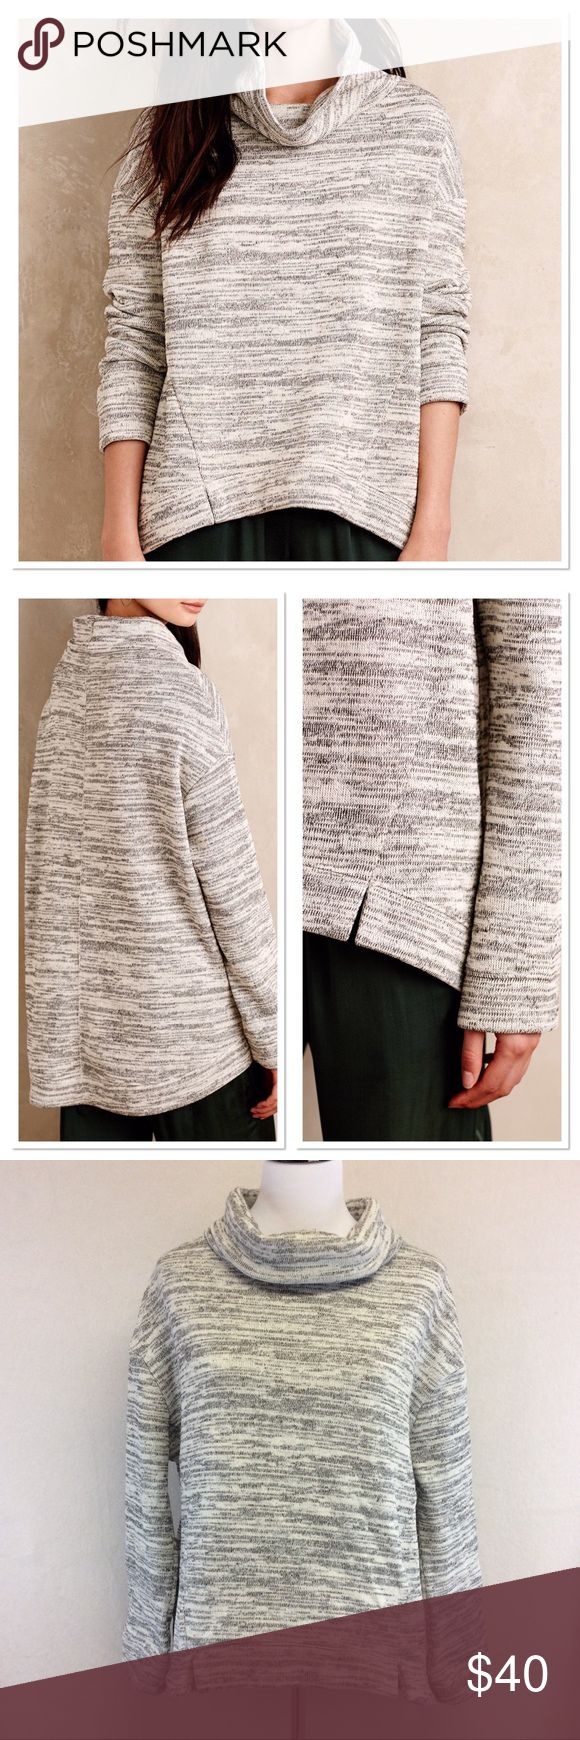 "M ANTHROPOLOGIE Saturday Sunday oversized sweat Brand: Saturday Sunday for Anthropologie  Style: oversized space dye sweatshirt in white Size: medium Approximate Measurements: pit to pit 24"" shoulder to hem 24""-27.5"" Material: 100% polyester Features: slouchy neck, long sleeves, heathered pattern in neutral color  Condition: excellent pre-loved Anthropologie Tops Sweatshirts & Hoodies"